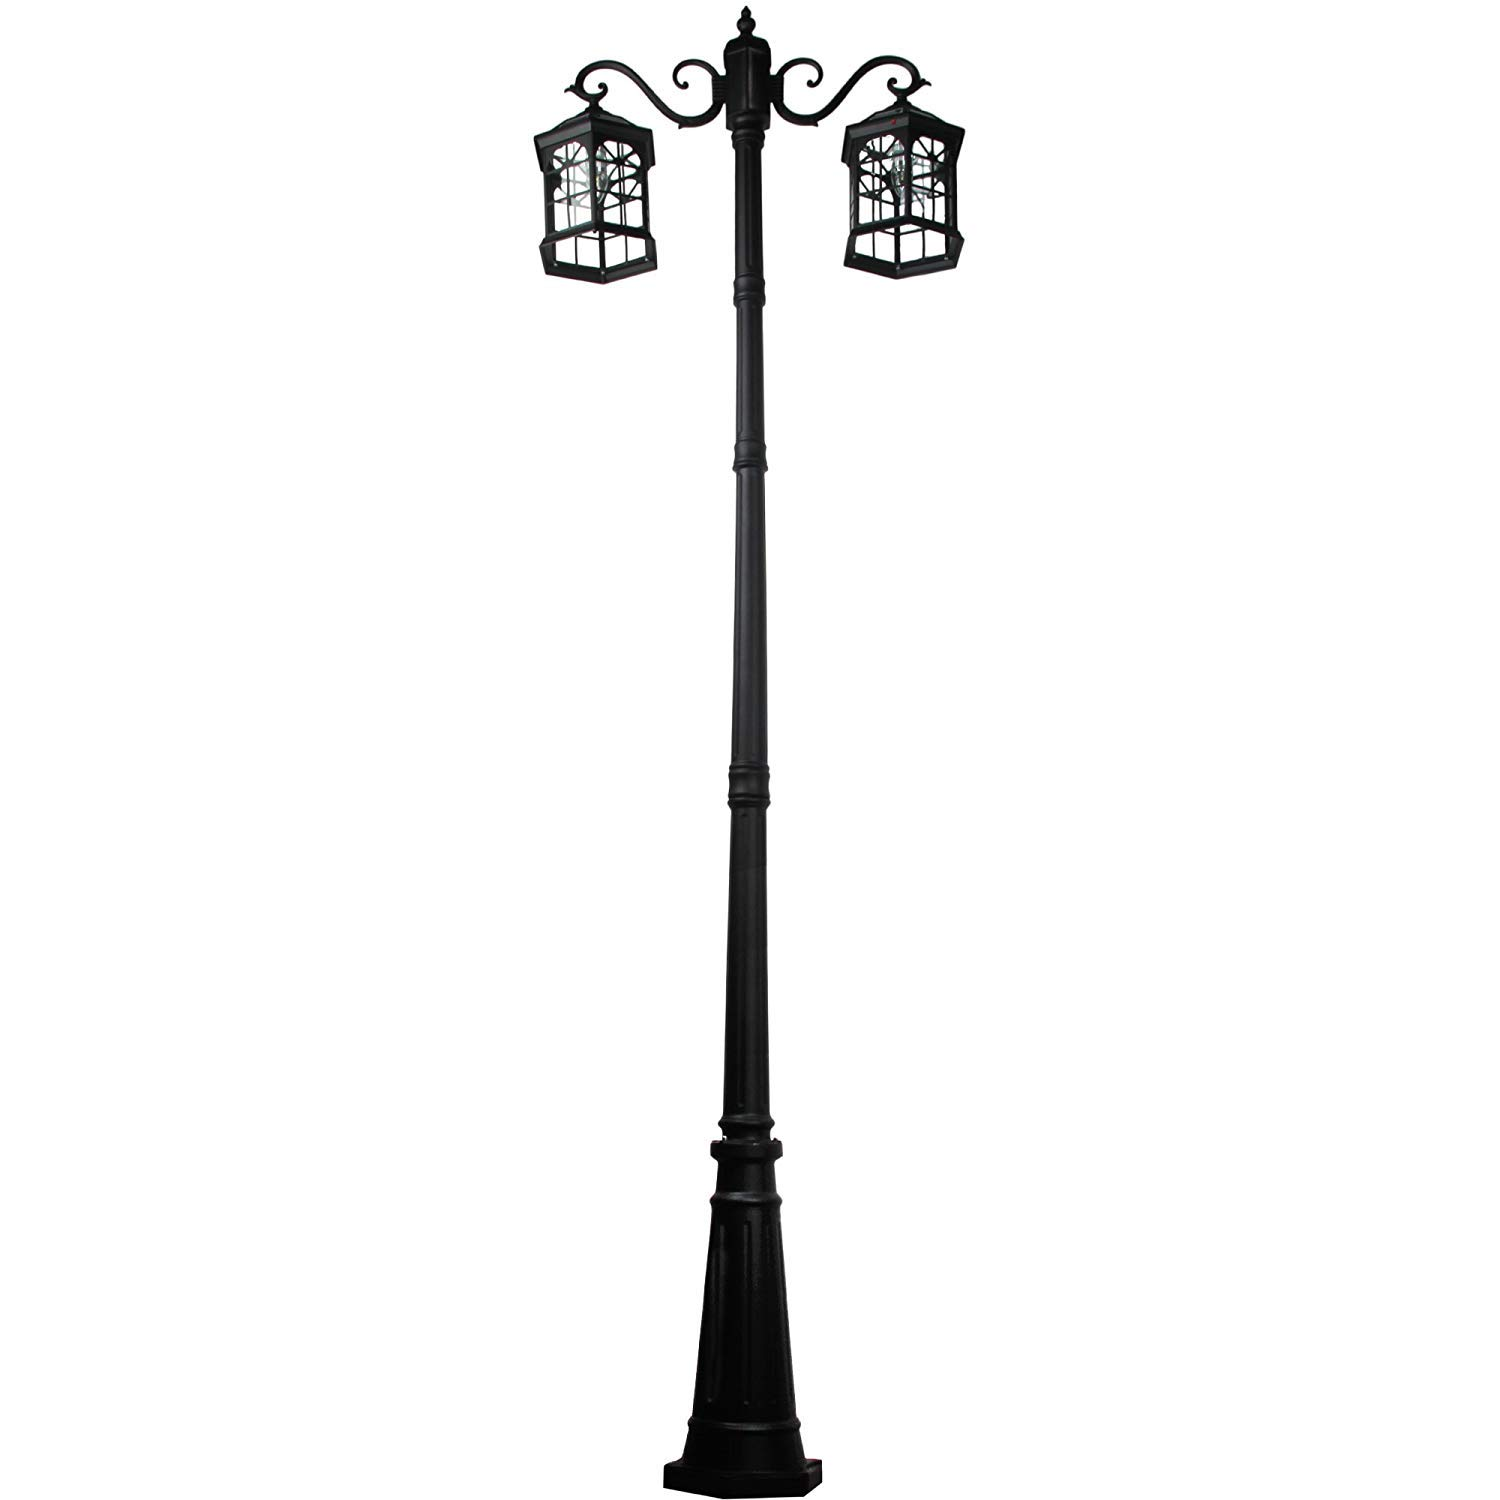 Kendal 8 Feet High Outdoor Solar Lamp Post Light with Two Heads and LED Lights SL-3801black2.45M by Kendal (Image #1)